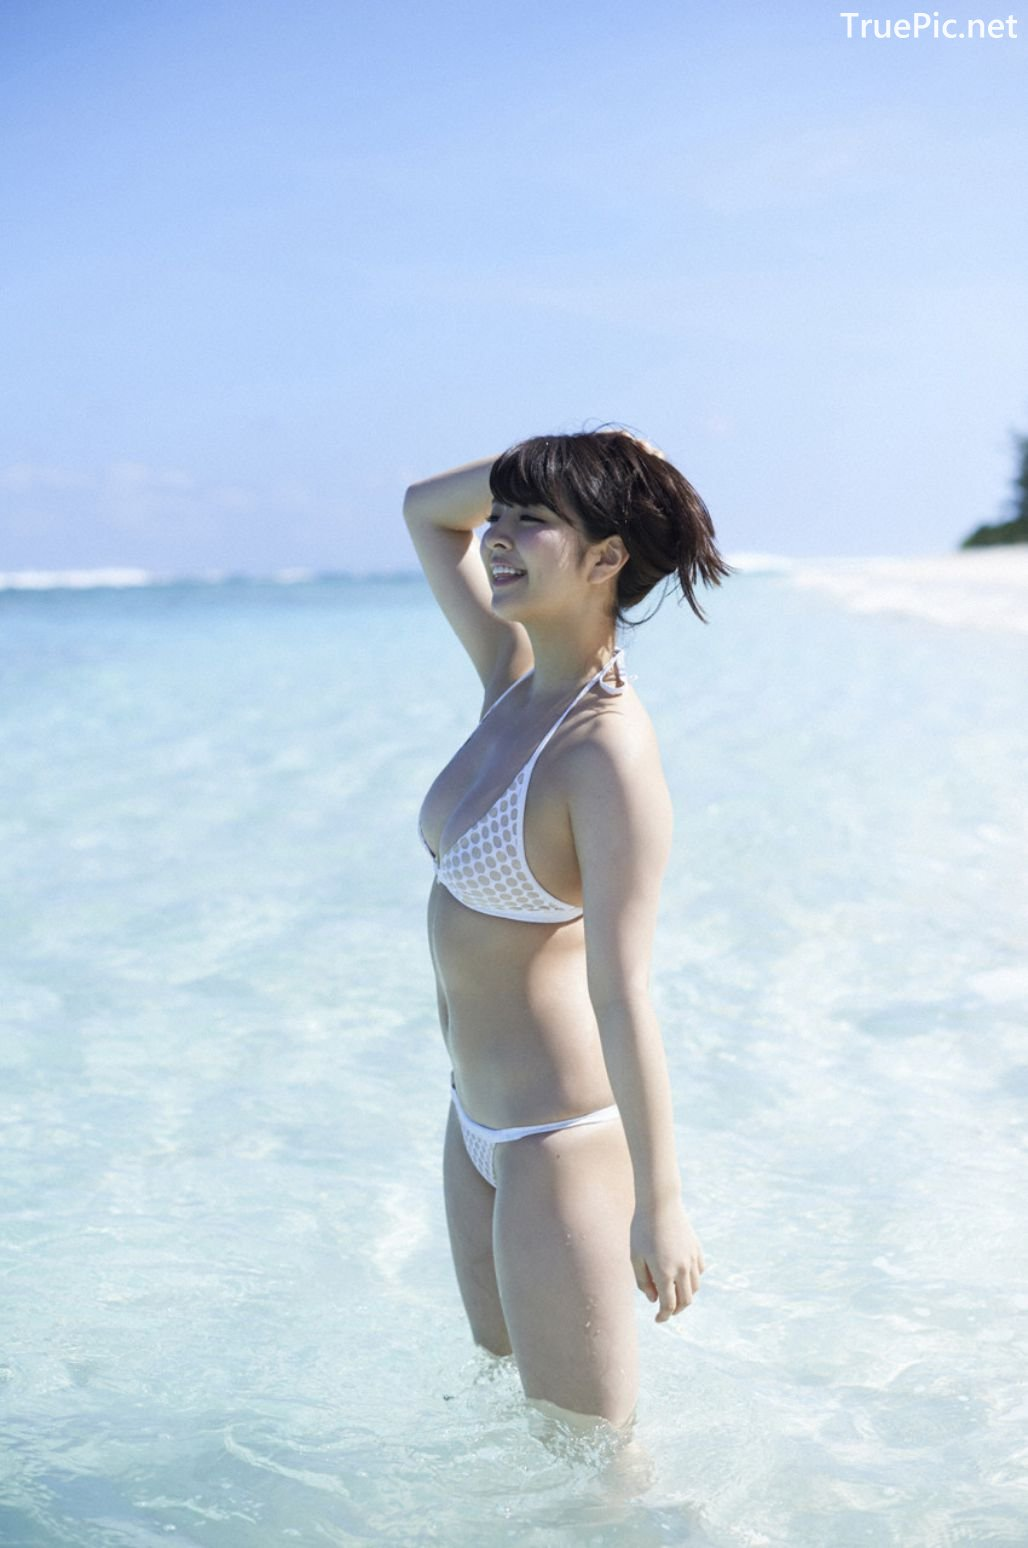 Image-Japanese-Actress-And-Model-Yurina-Yanagi-Blue-Sea-And-Hot-Bikini-Girl-TruePic.net- Picture-5